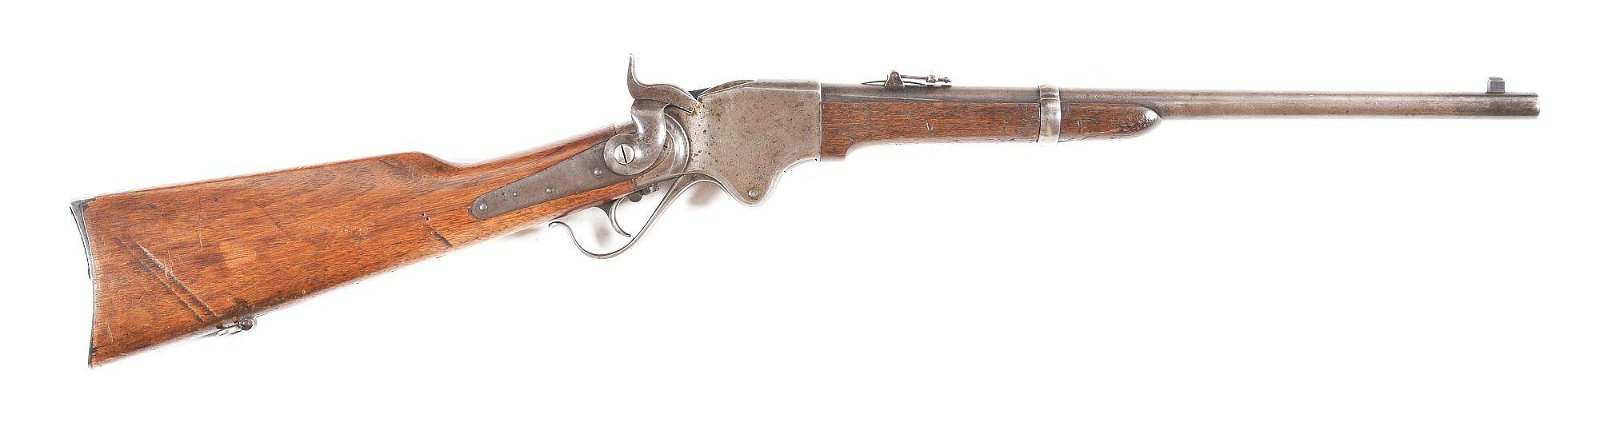 (A) SPENCER 1865 REPEATING RIFLE.